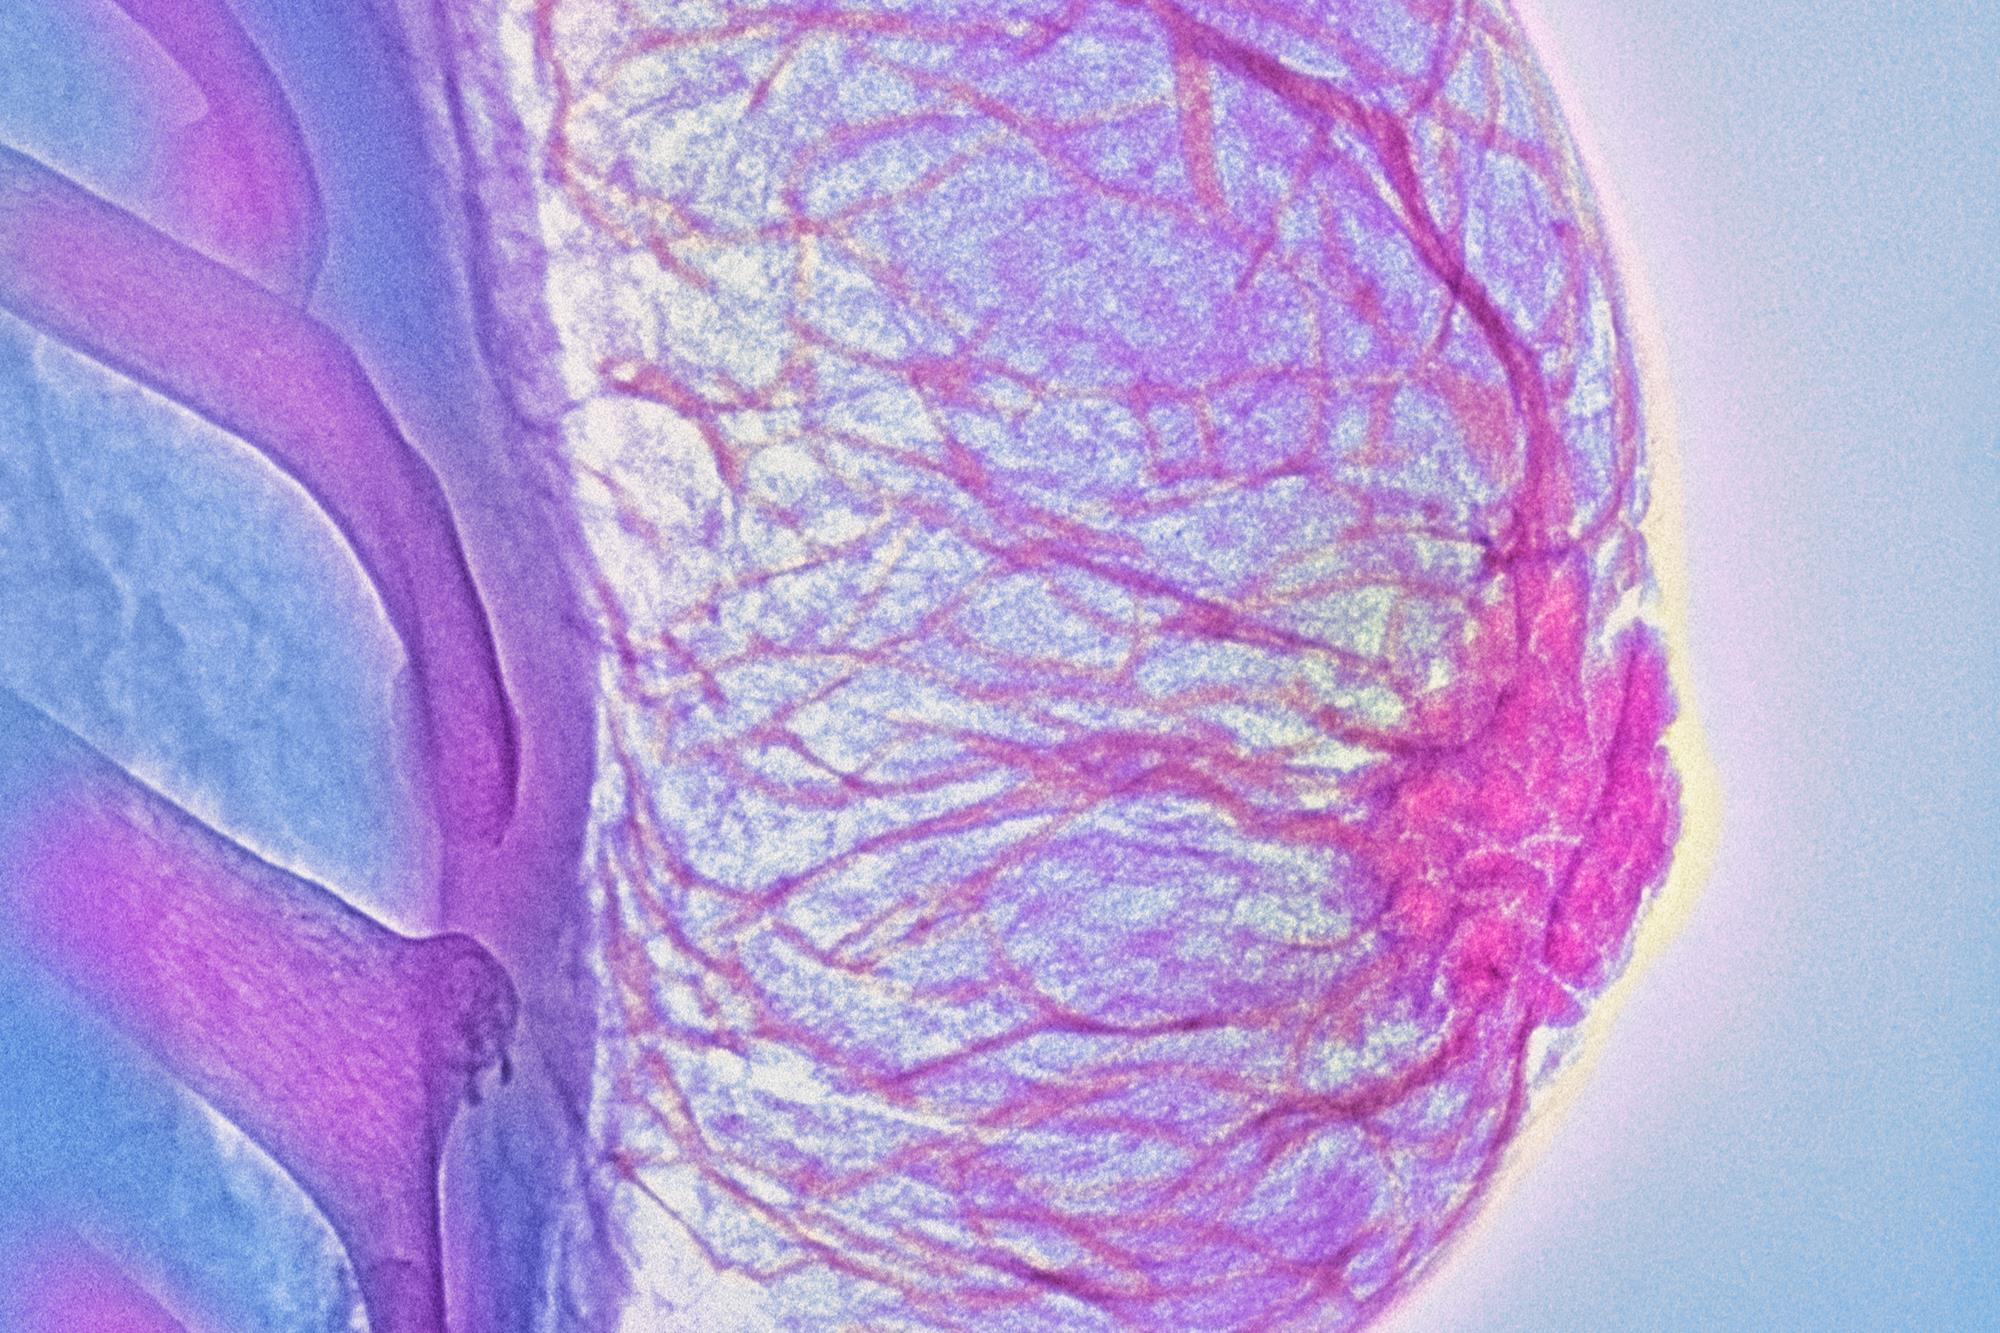 Breast pain: what's the diagnosis? | Differential diagnoses